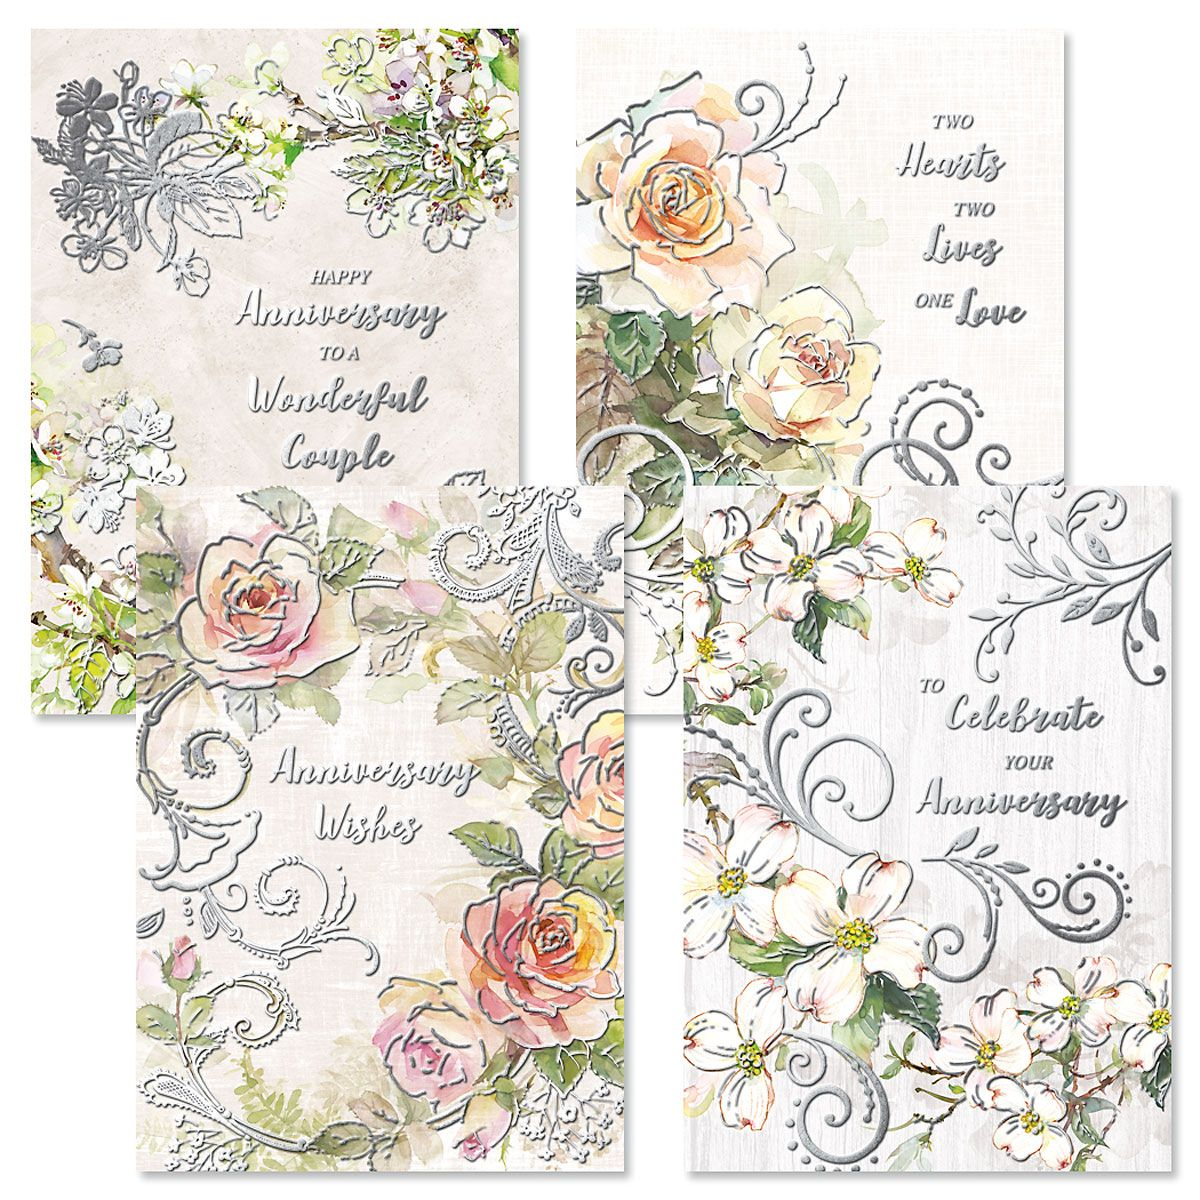 Deluxe Floral Anniversary Cards and Seals